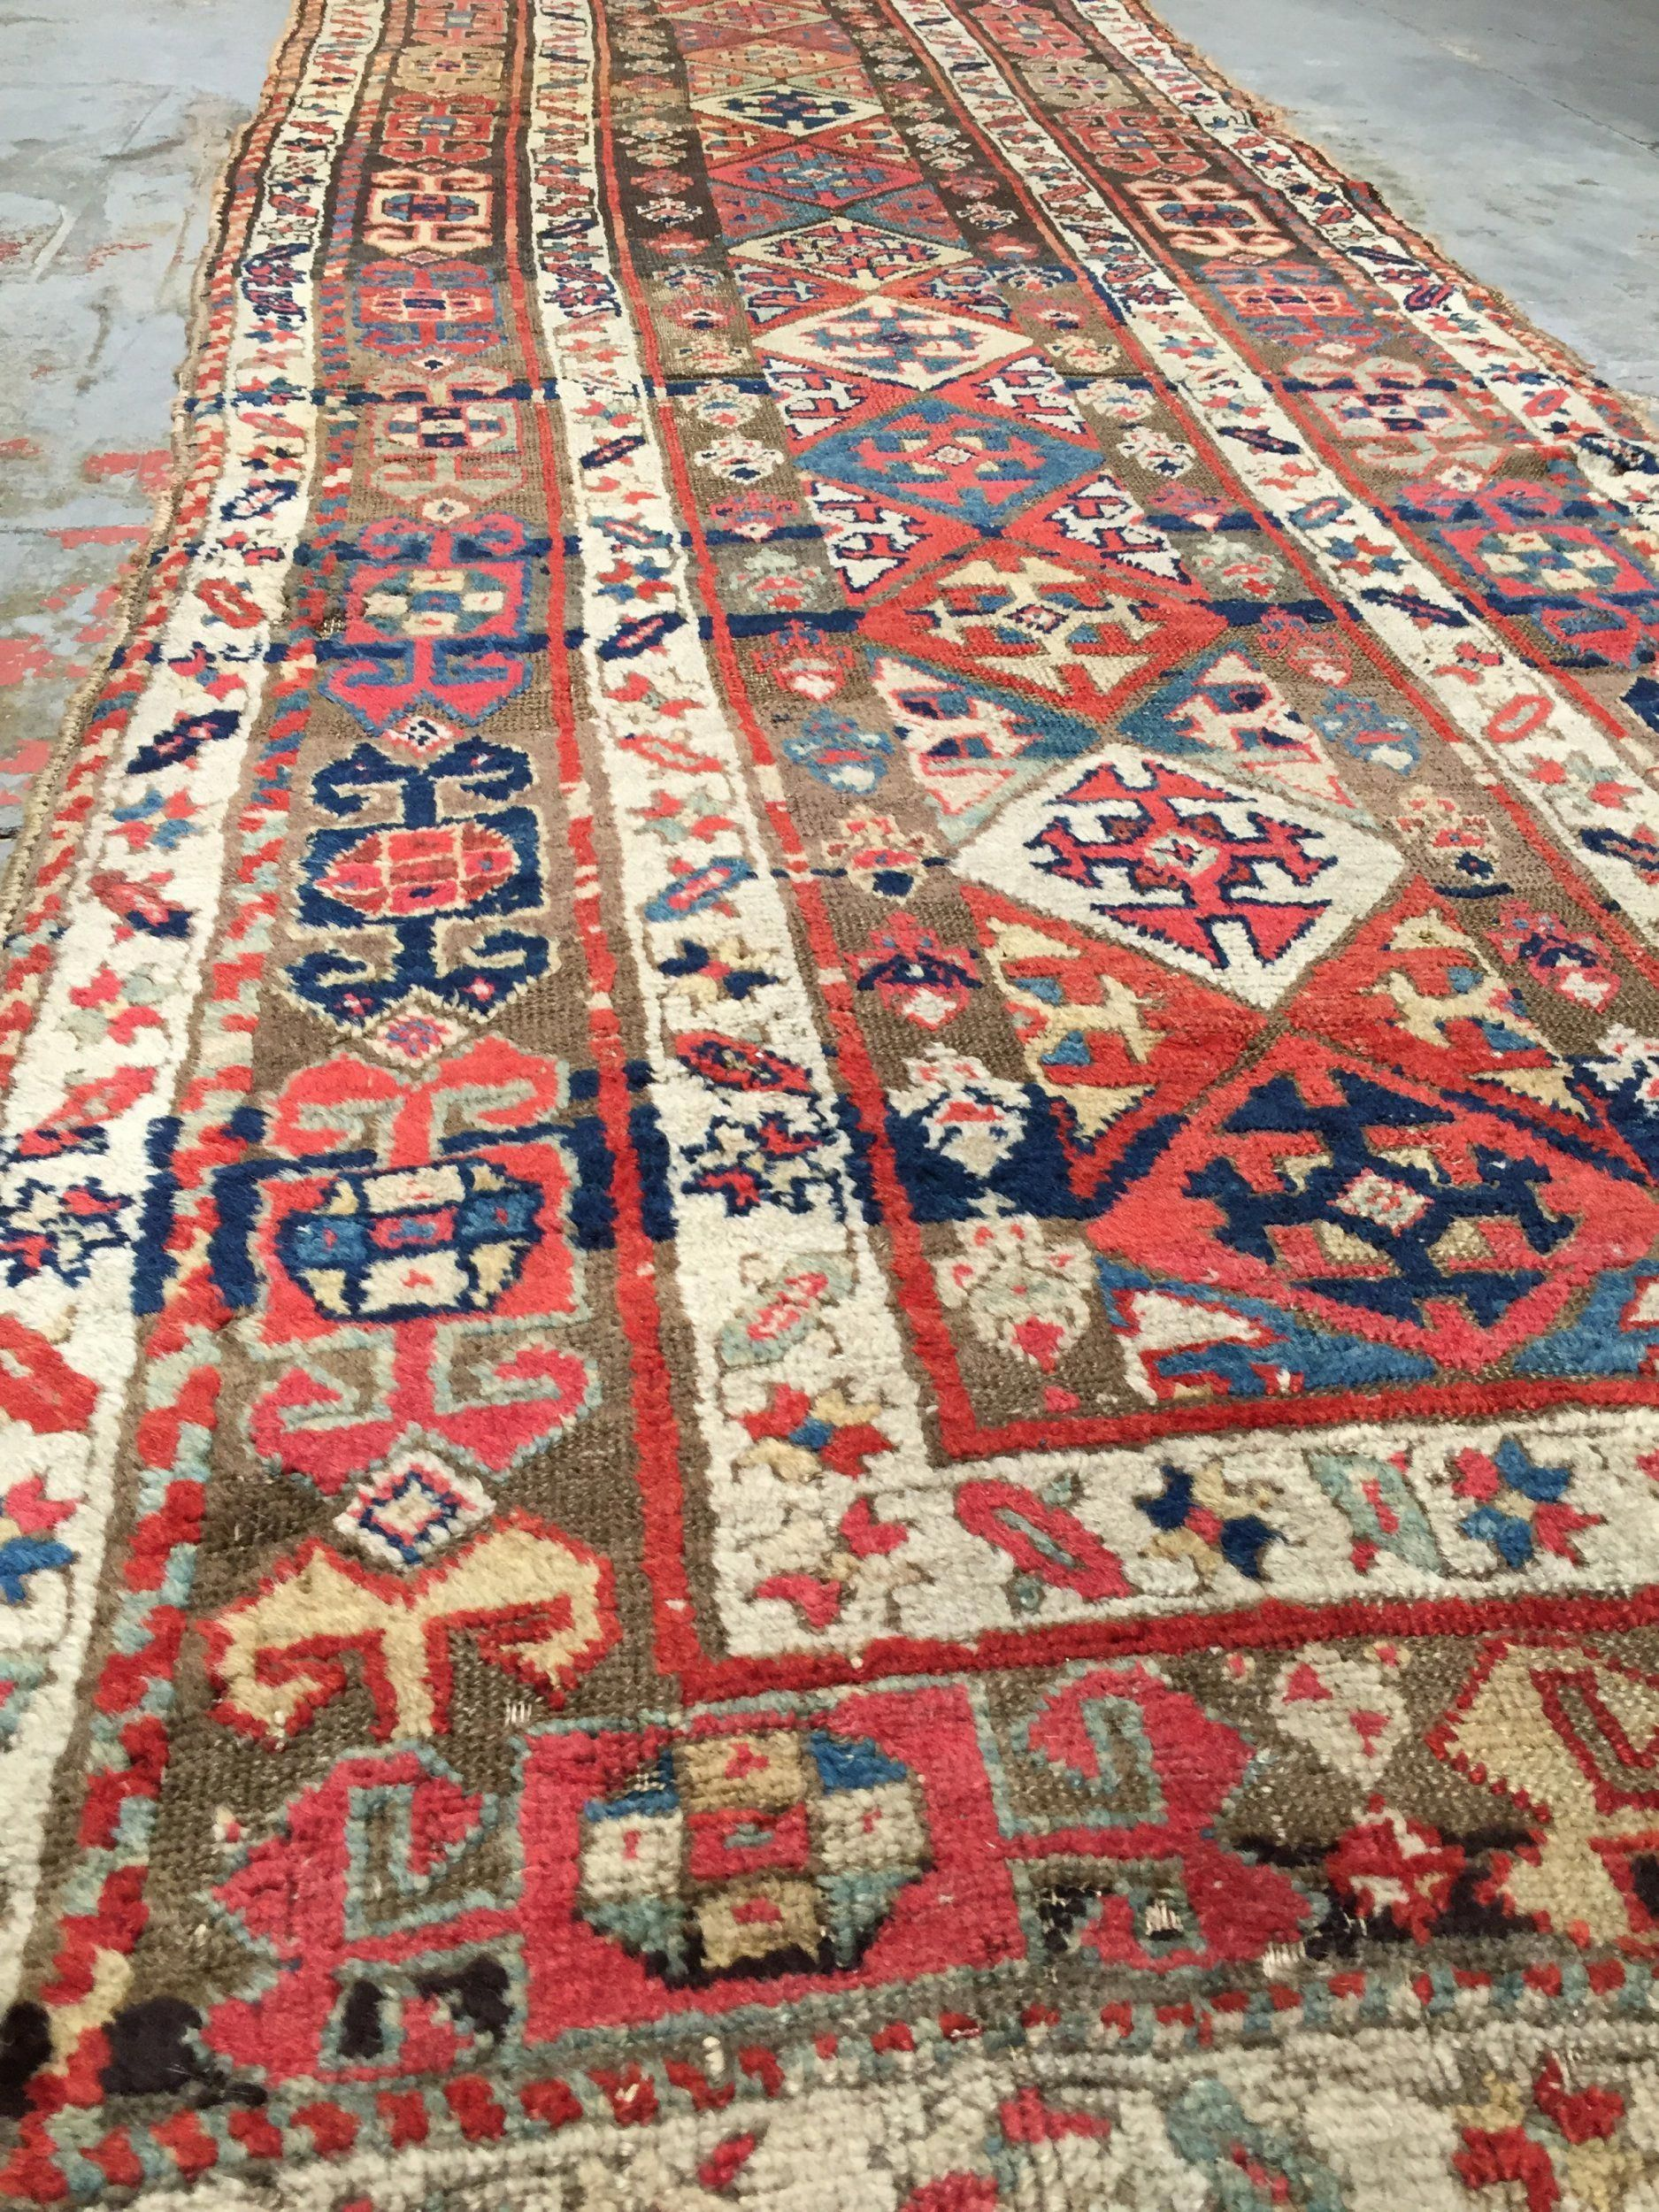 Antique Nw Persian Runner Rug 3 5 X 12 7 Runnerrugs Rug Runner Persian Rug Runners Rugs